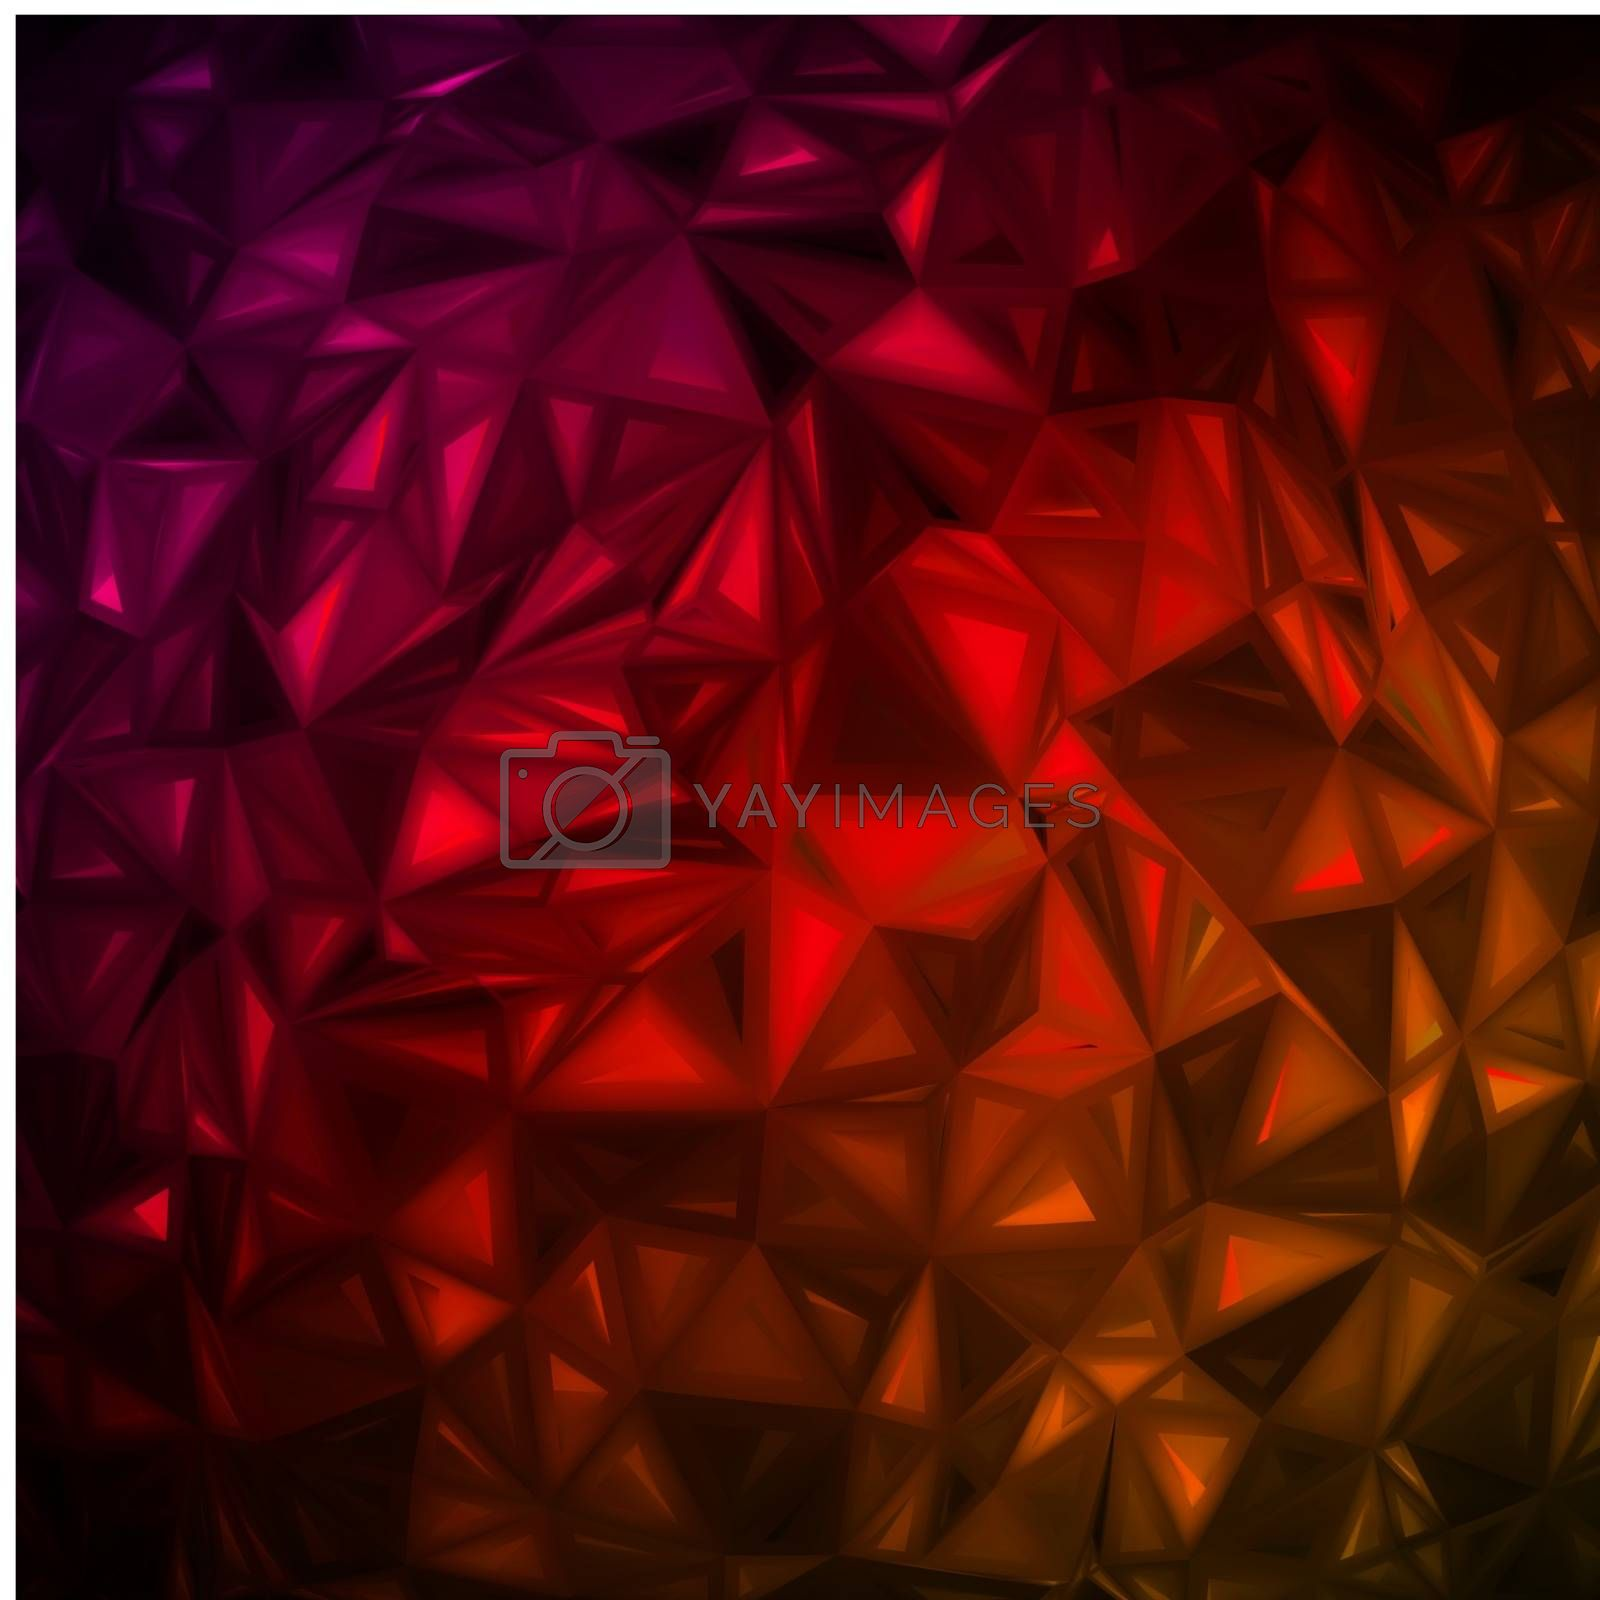 Rumpled abstract background. EPS 8 by Petrov_Vladimir